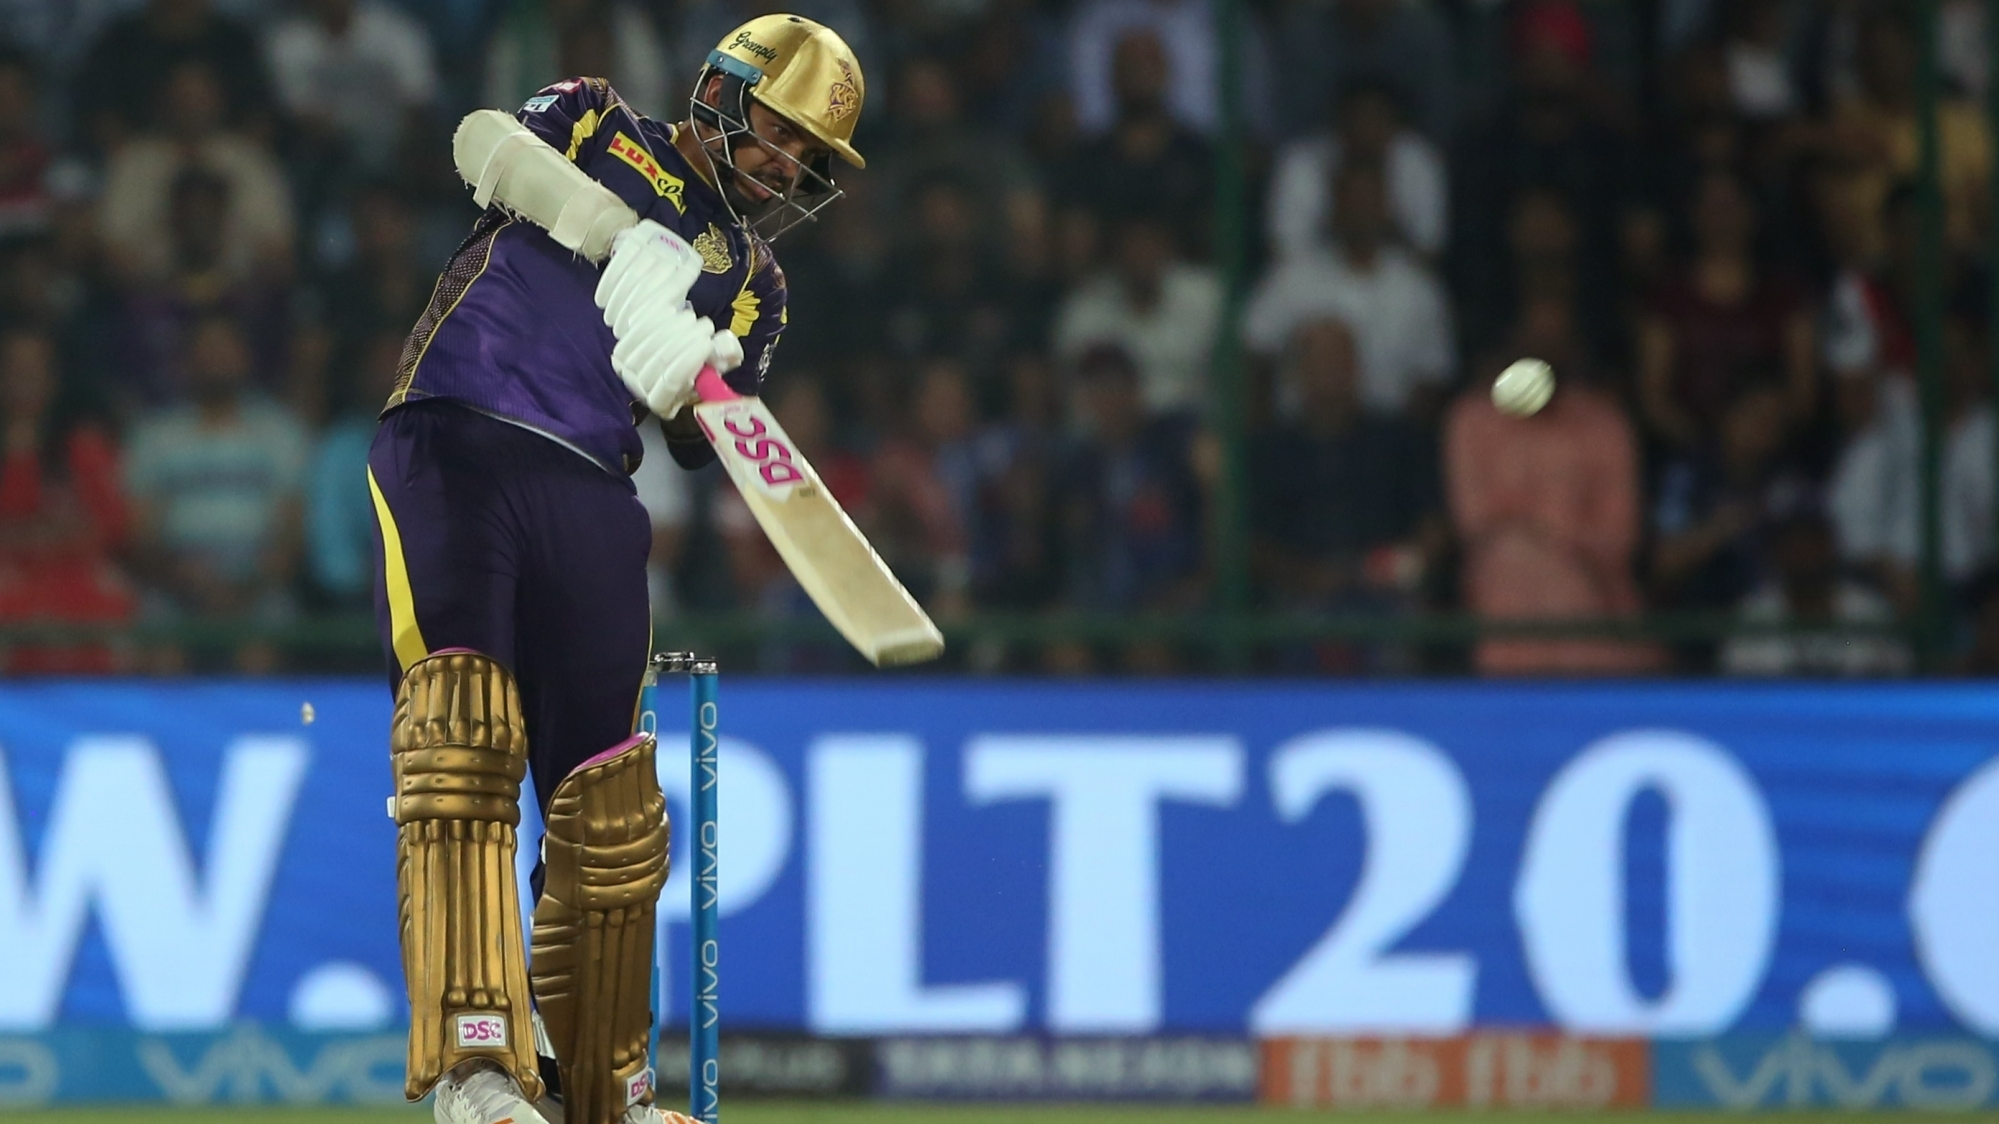 IPL 2018: Dinesh Karthik delighted with Sunil Narine's progress as a batsman